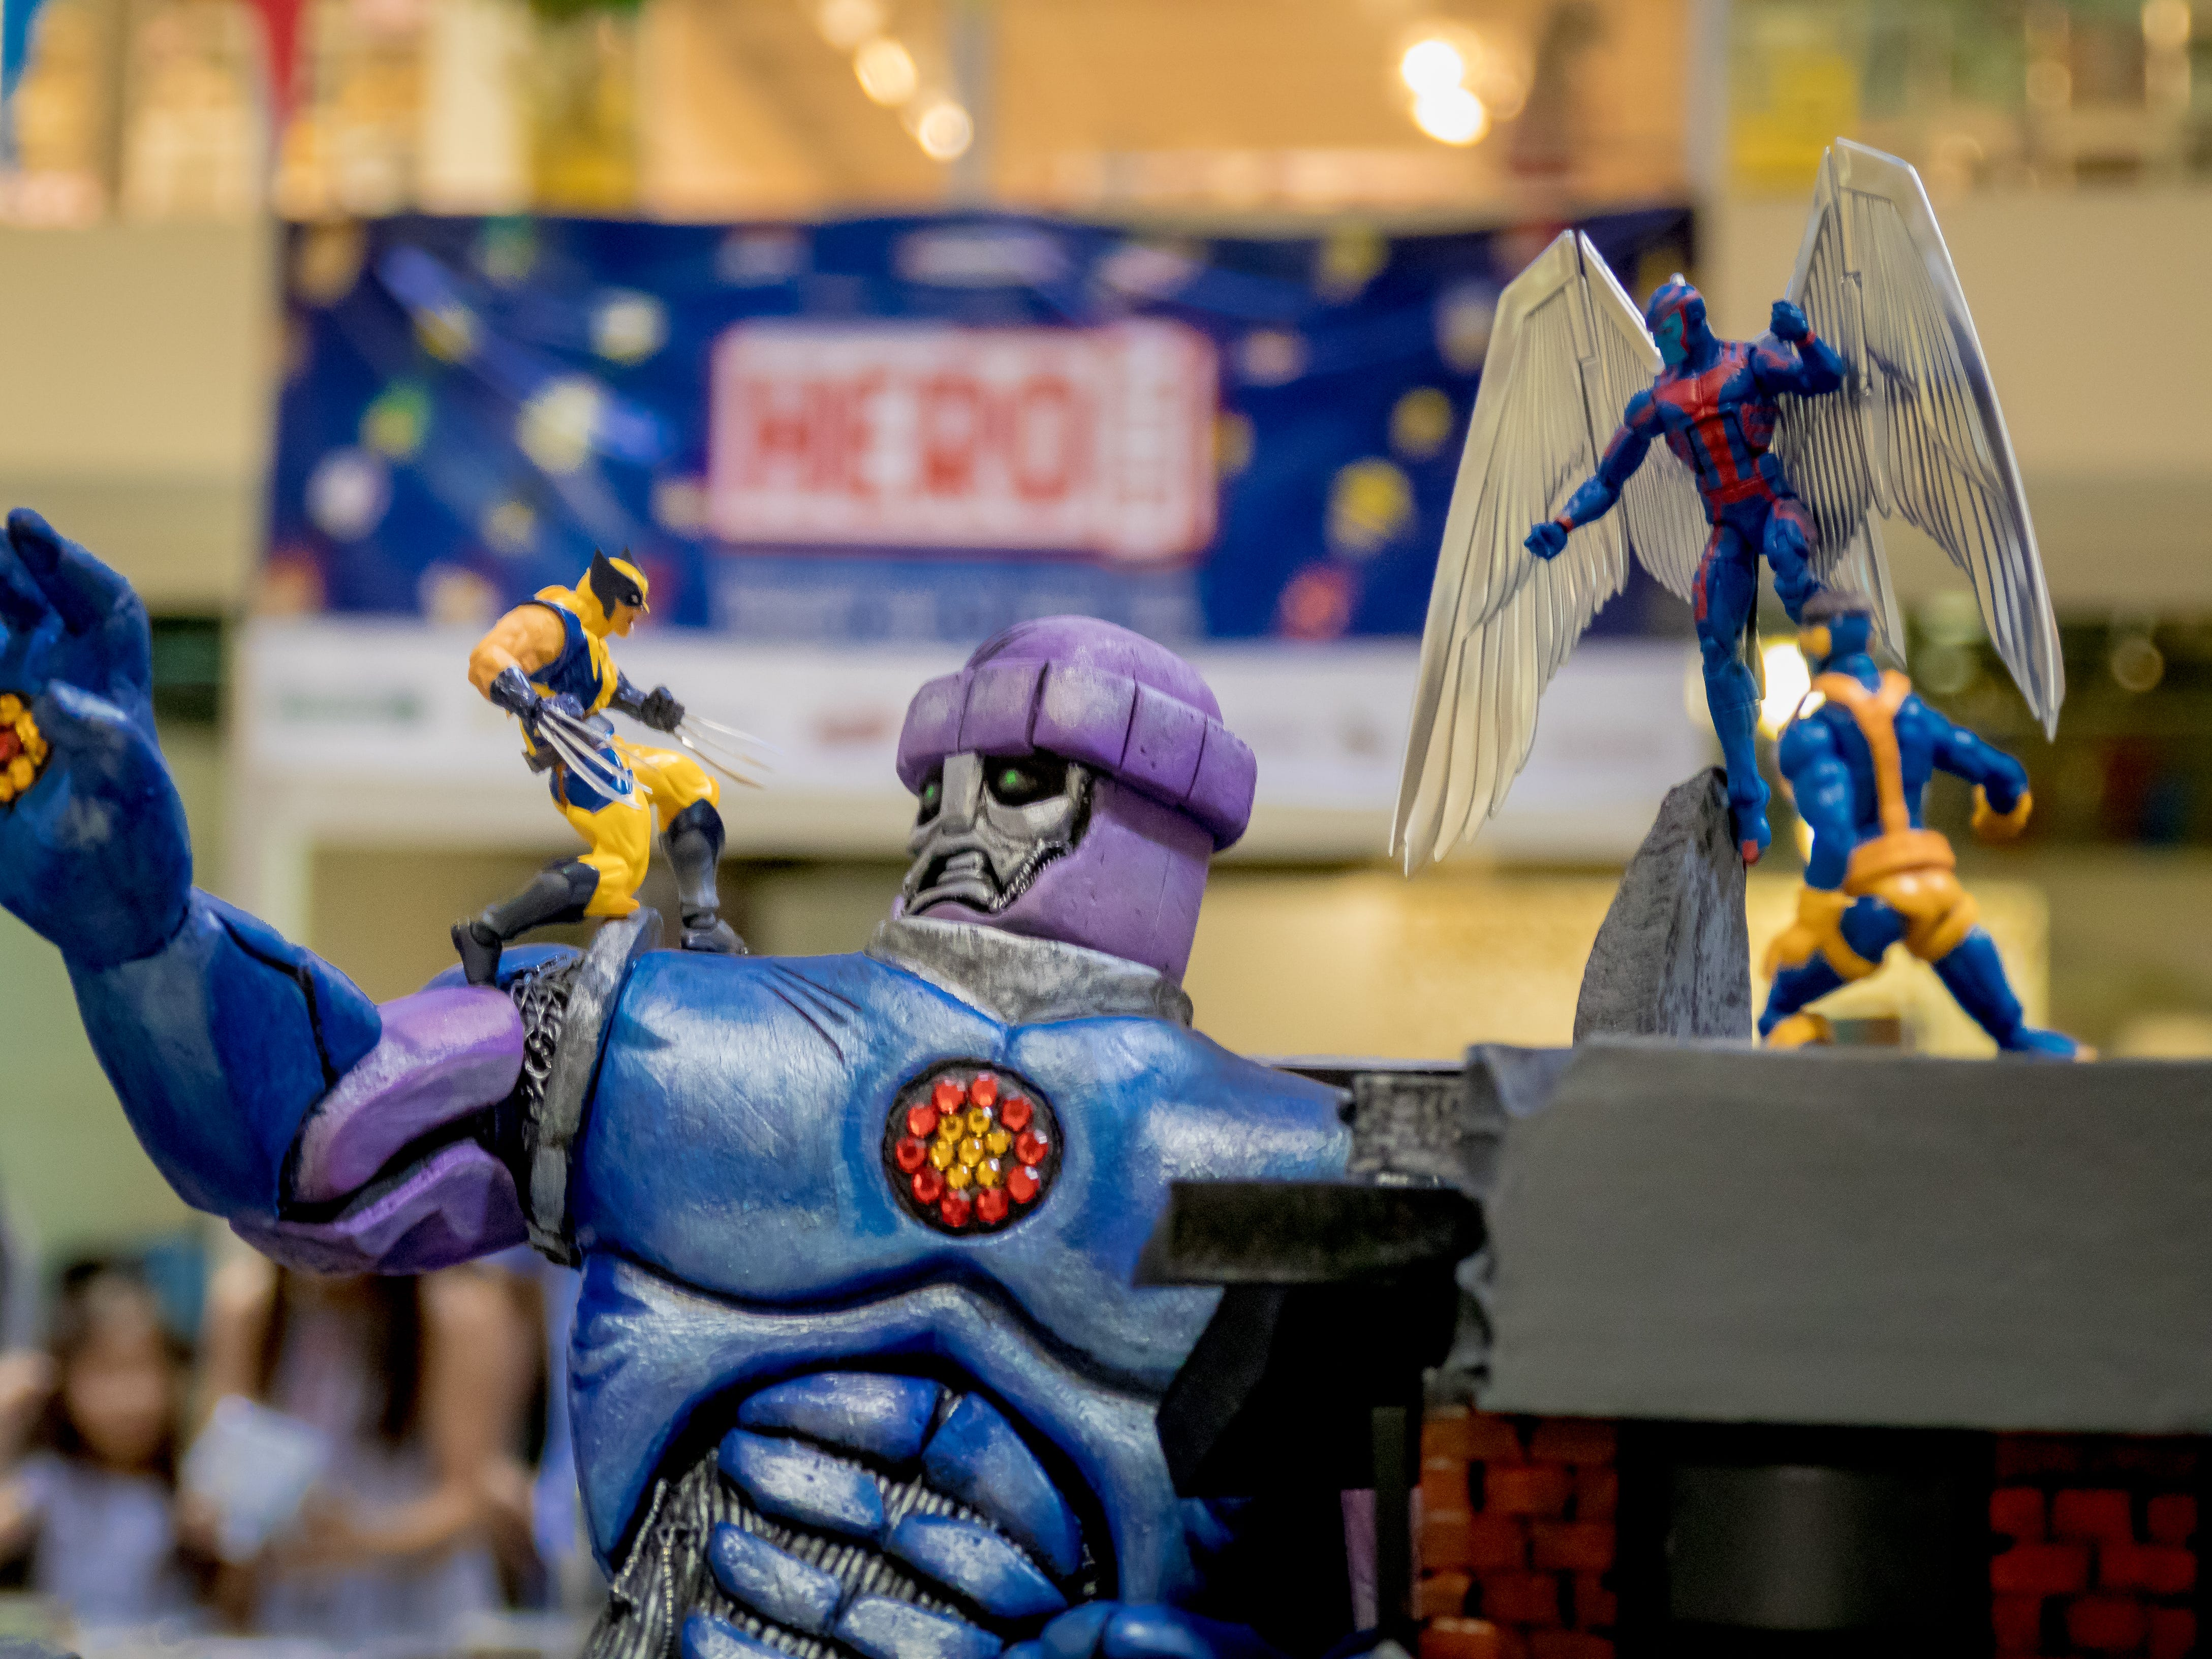 Various action figures are displayed during the Herocon event held at Agana Shopping Center on Dec. 9.